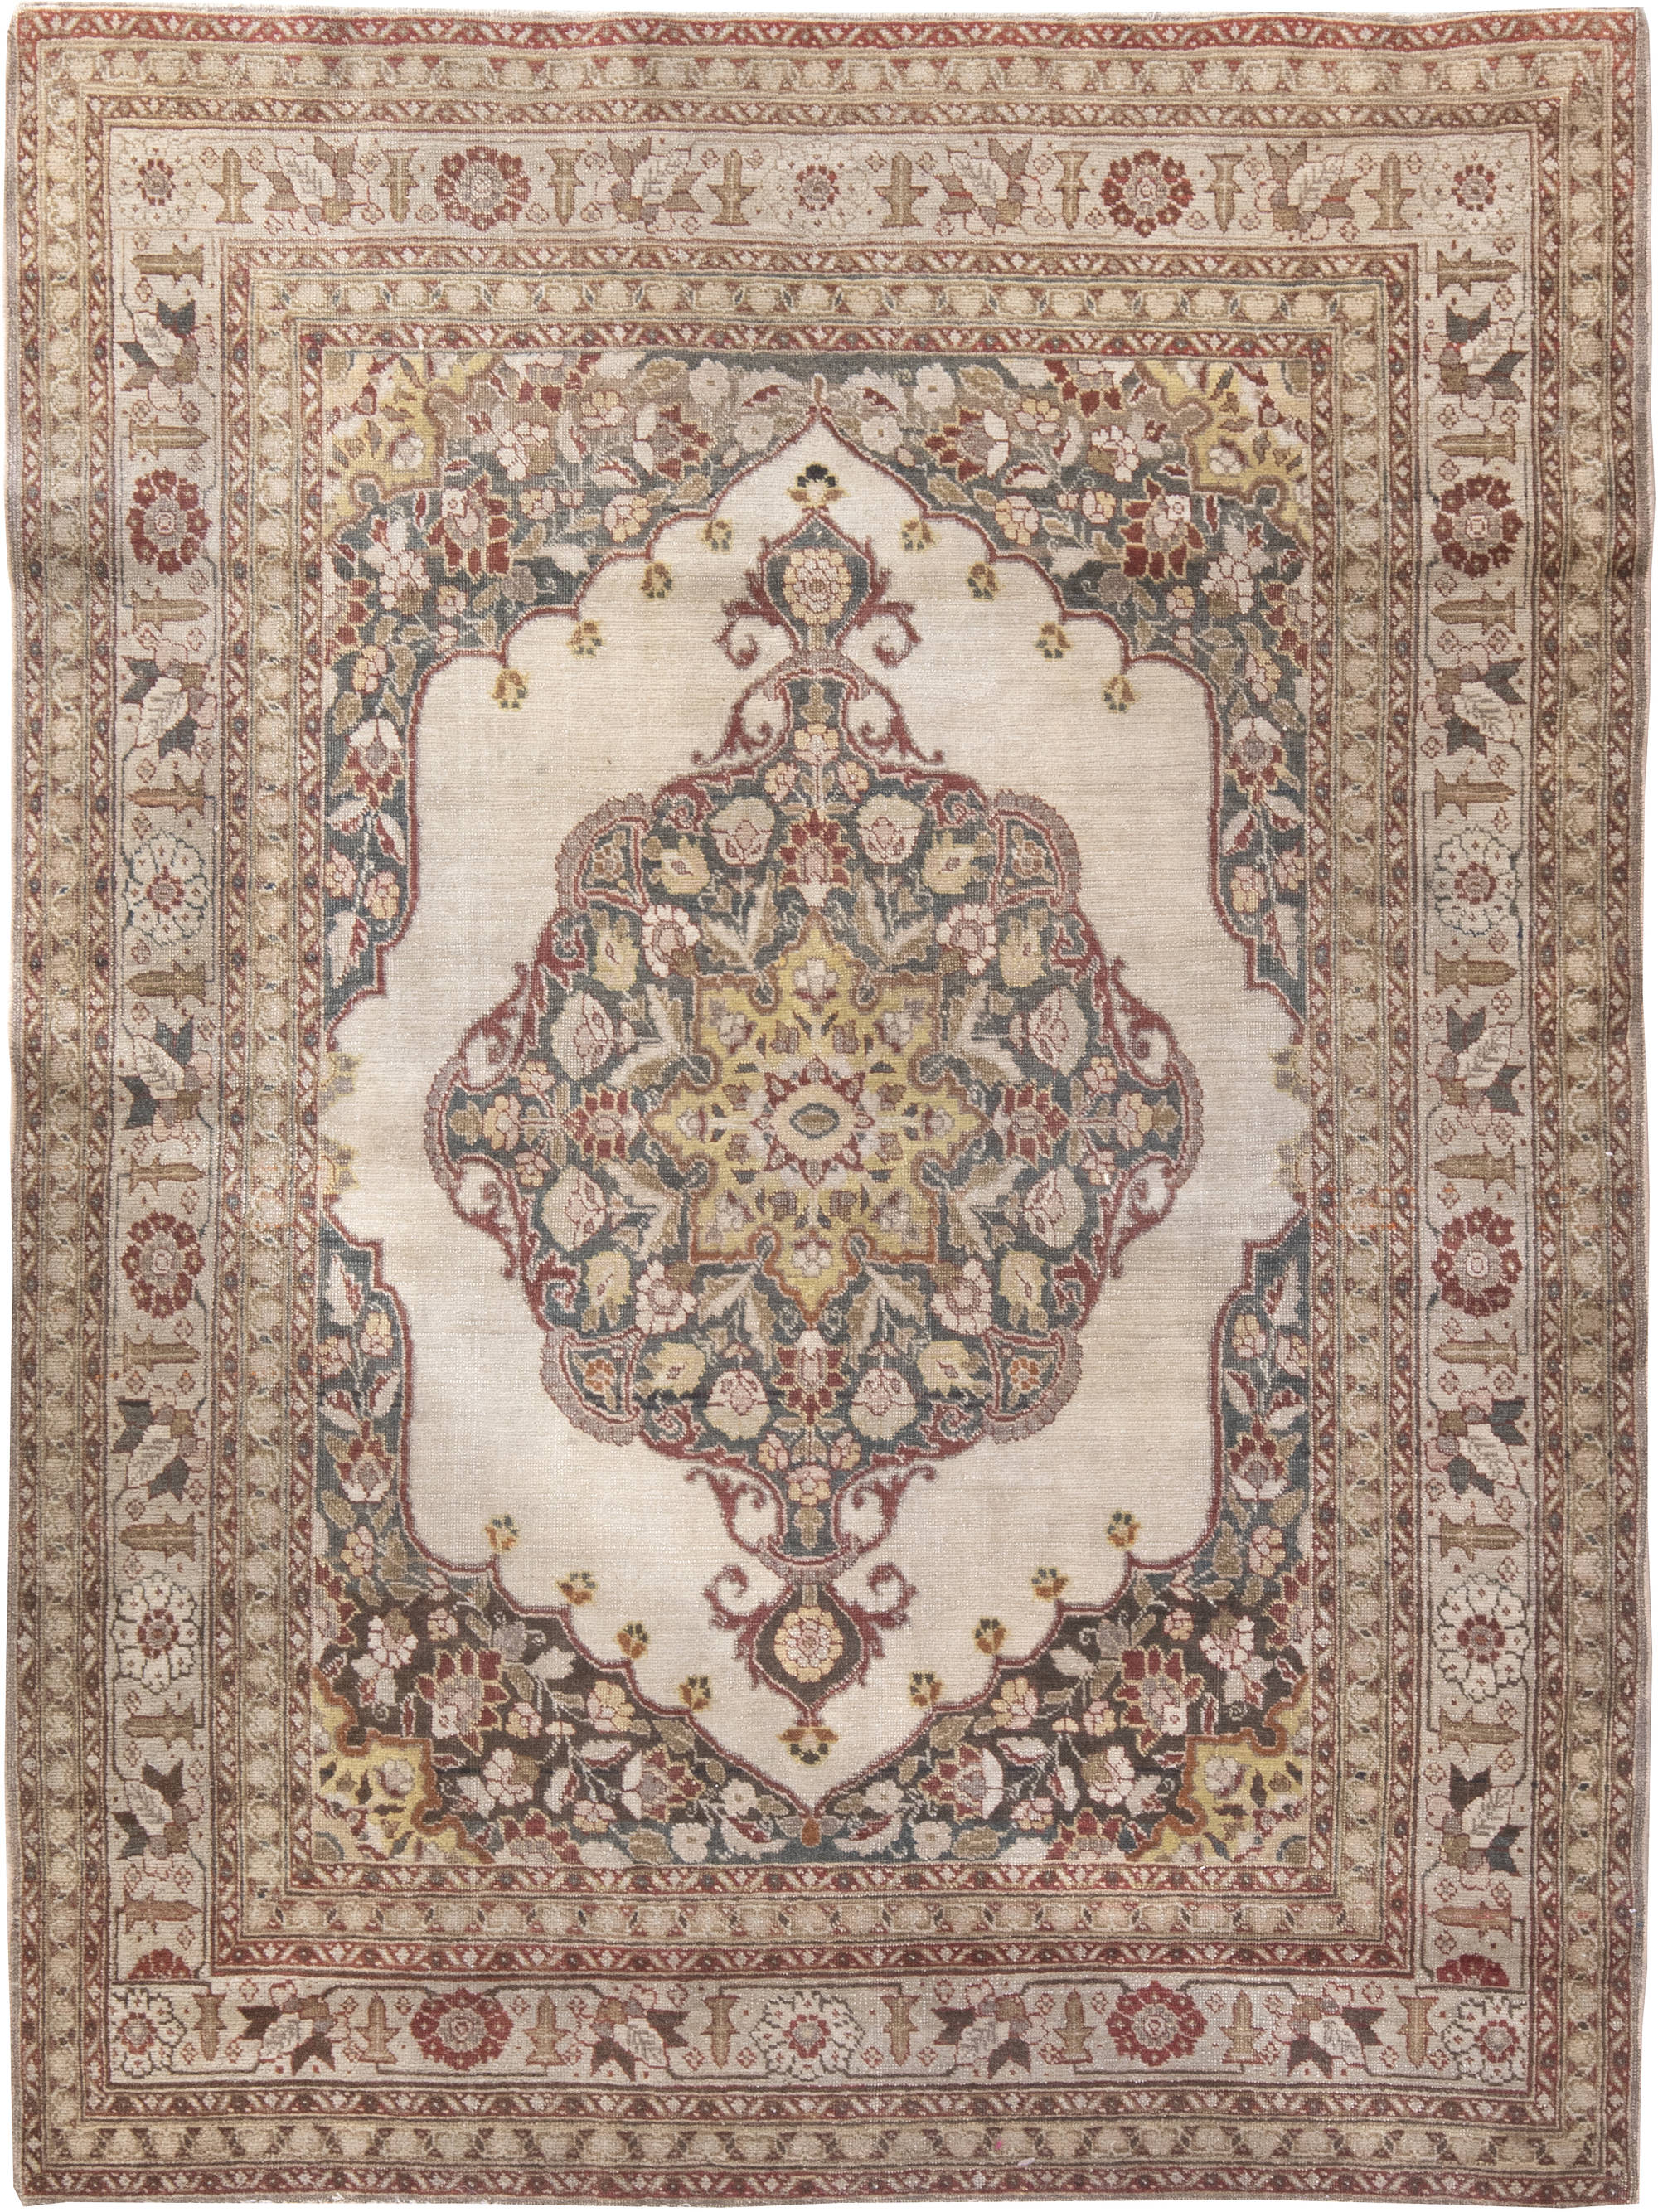 Rugs And Carpets Antique Persian Rugs And Antique Oriental Rugs